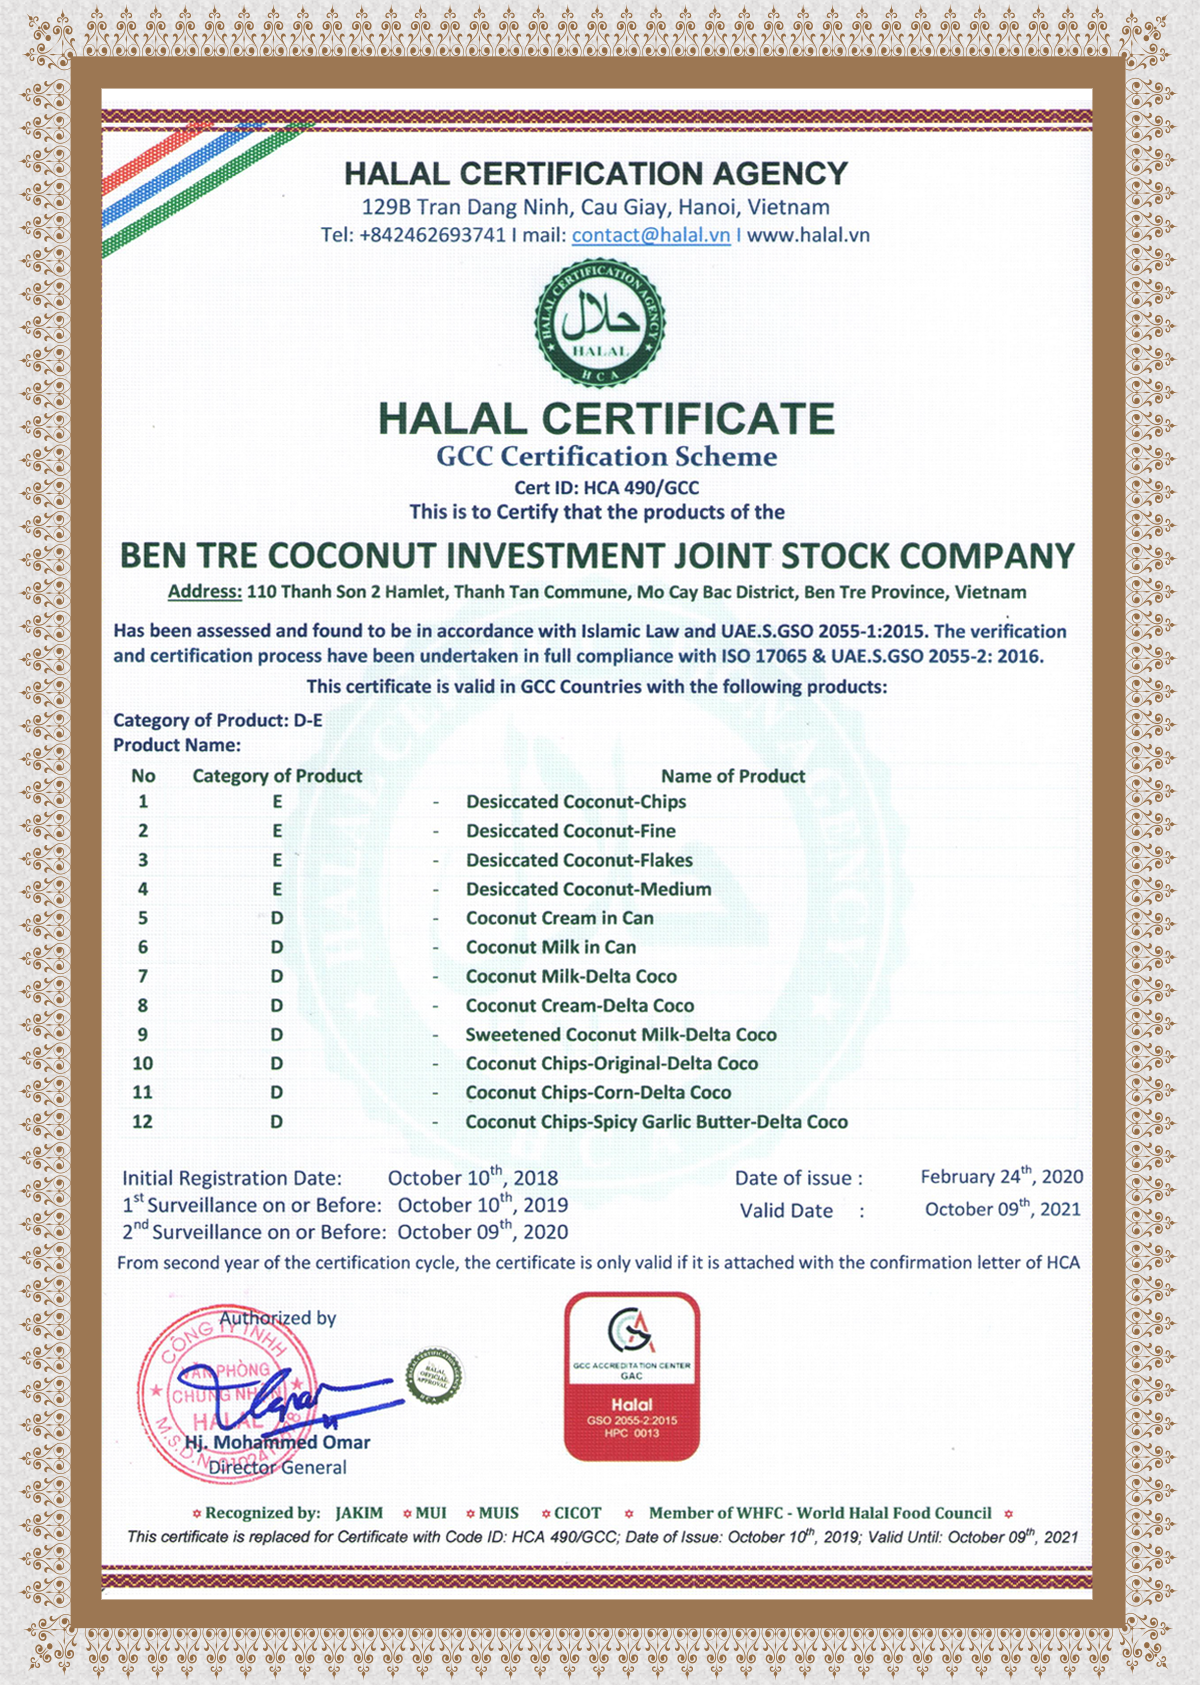 HALAL CERTIFICATION (UAE)